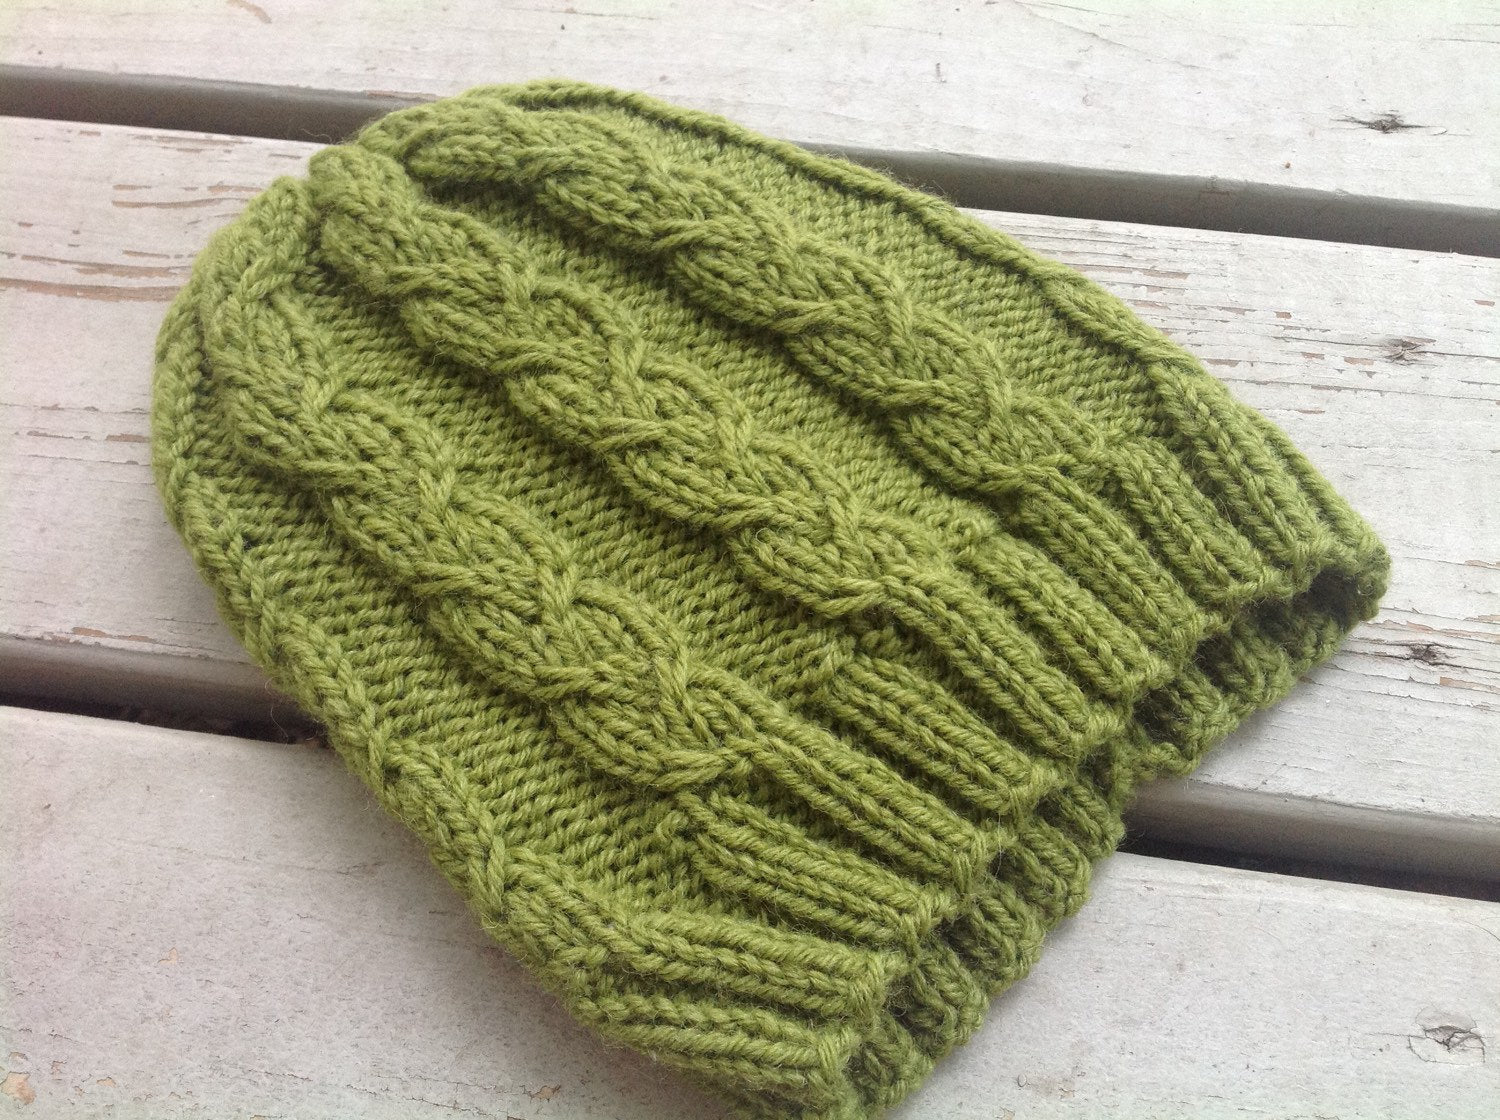 23ffc4e3512 unisex green cable knit hat knitting pattern ...